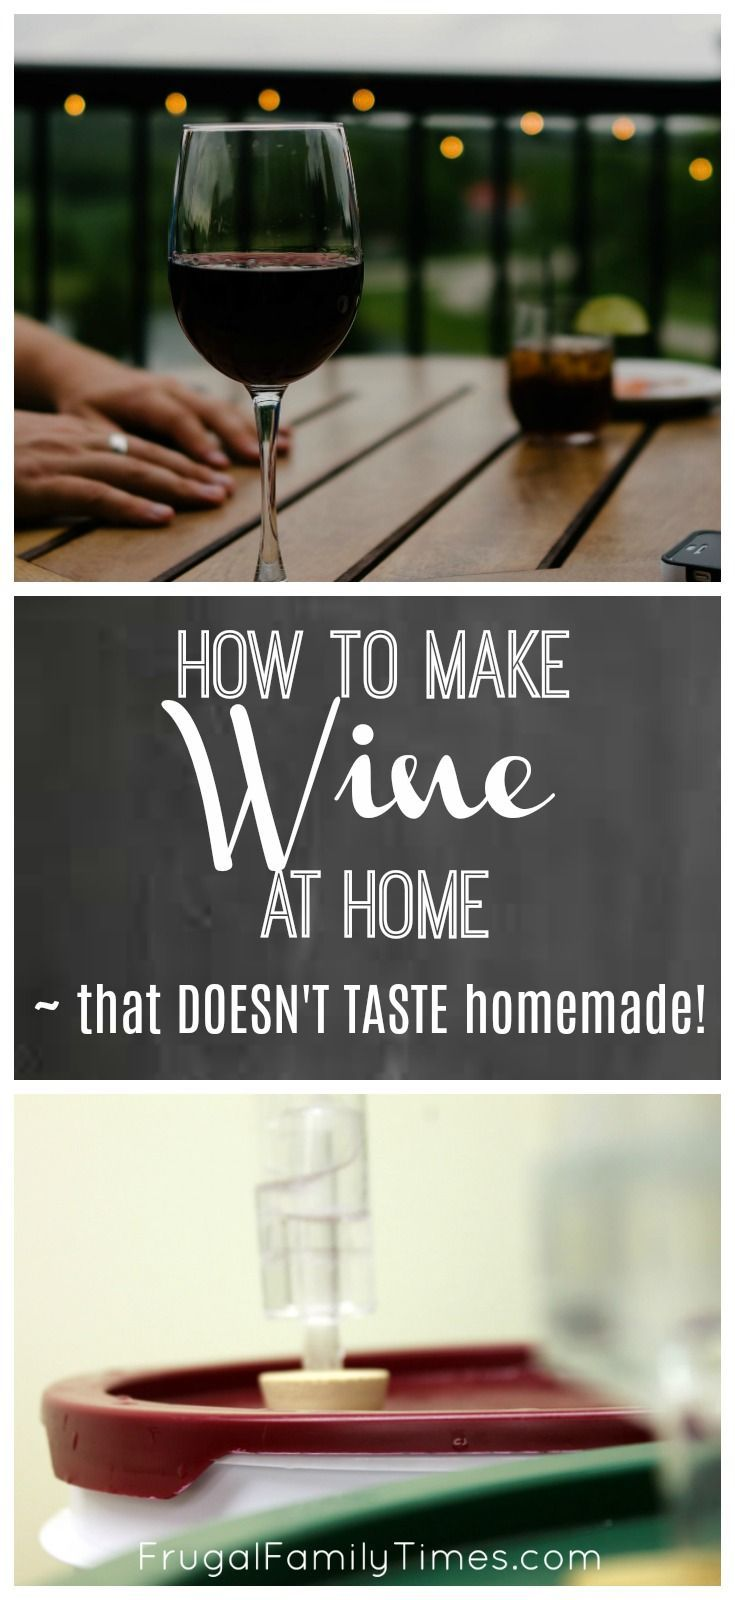 Home wine making and beer brewing recipes quality wine - How To Make Wine At Home That Doesn T Taste Homemade